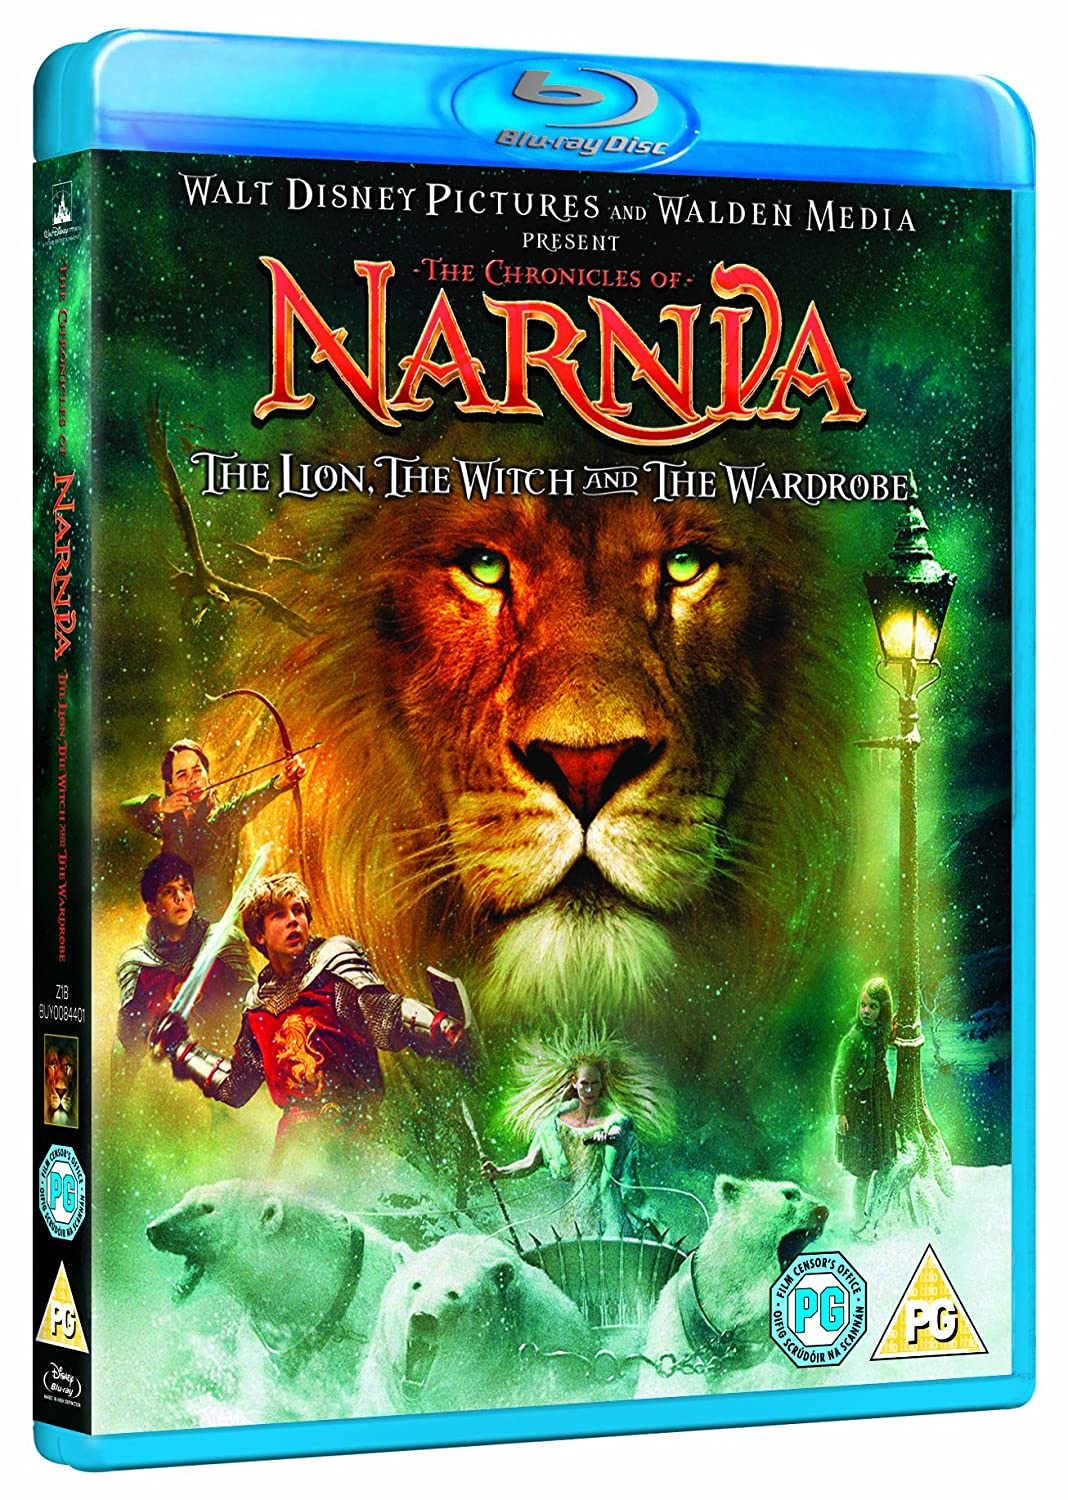 Parallax home of jesse maitland - 12 Days Of Christmas Review The Chronicles Of Narnia The Lion The Witch And The Wardrobe